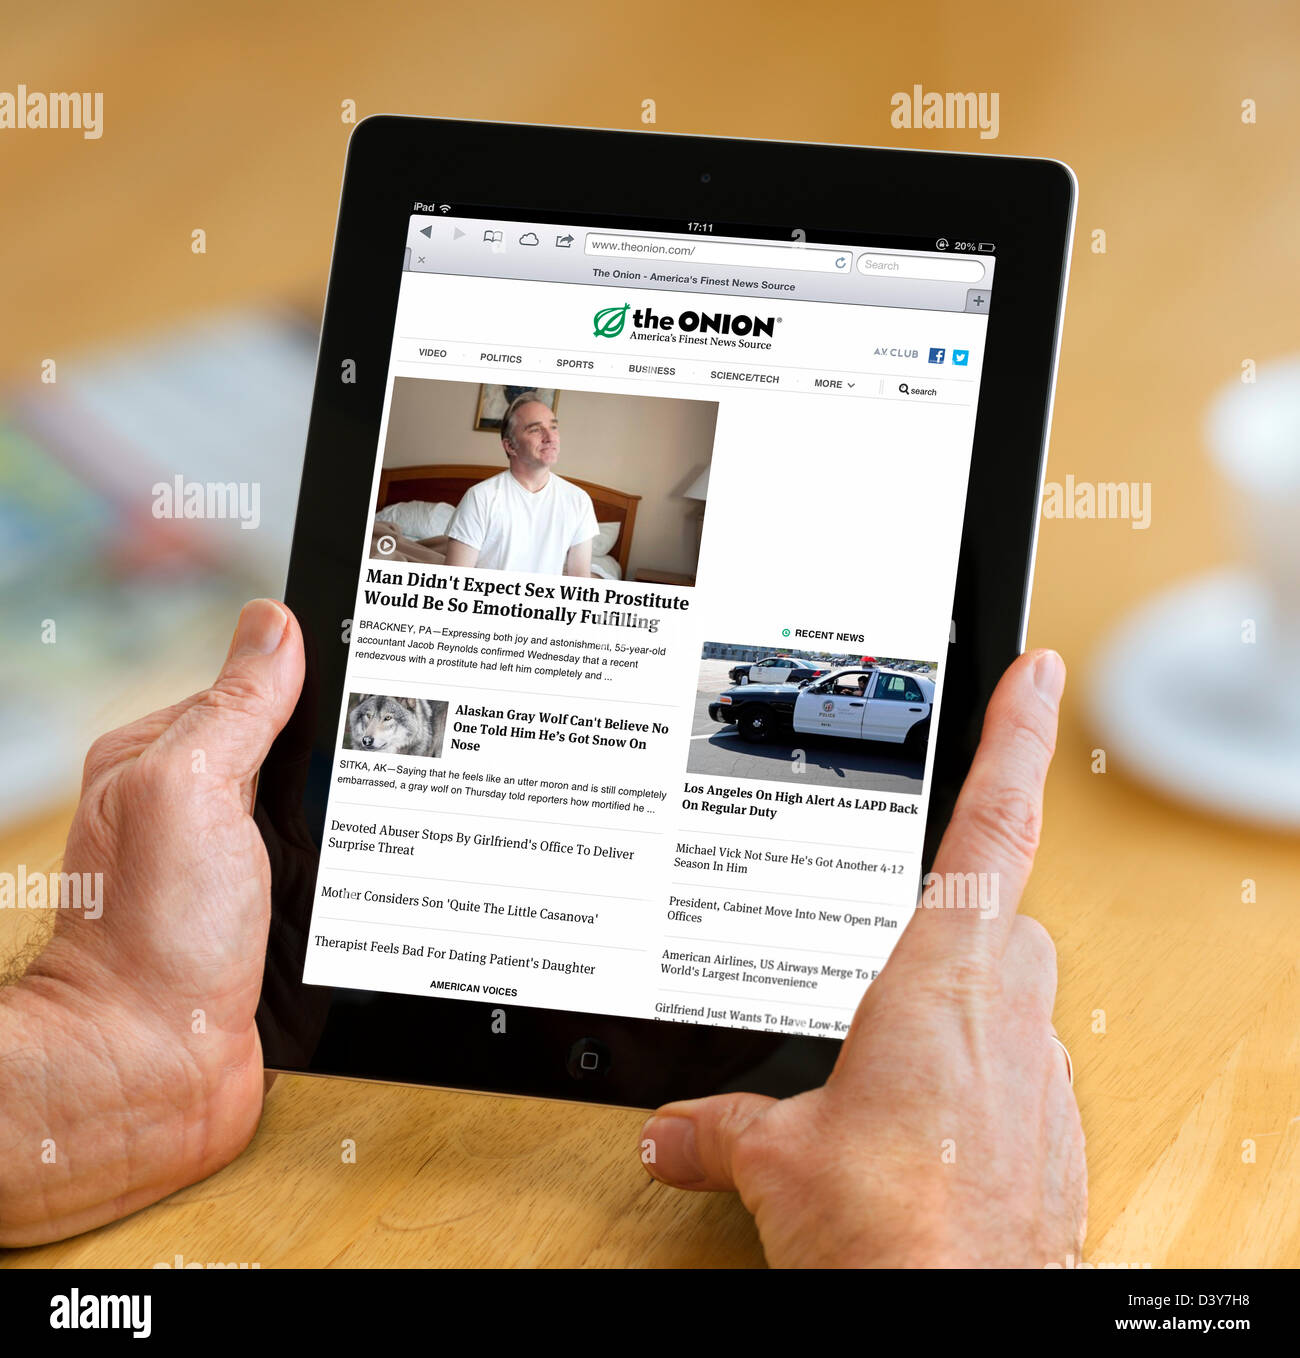 The satirical website, The Onion, viewed on a 4th generation Apple iPad, USA - Stock Image